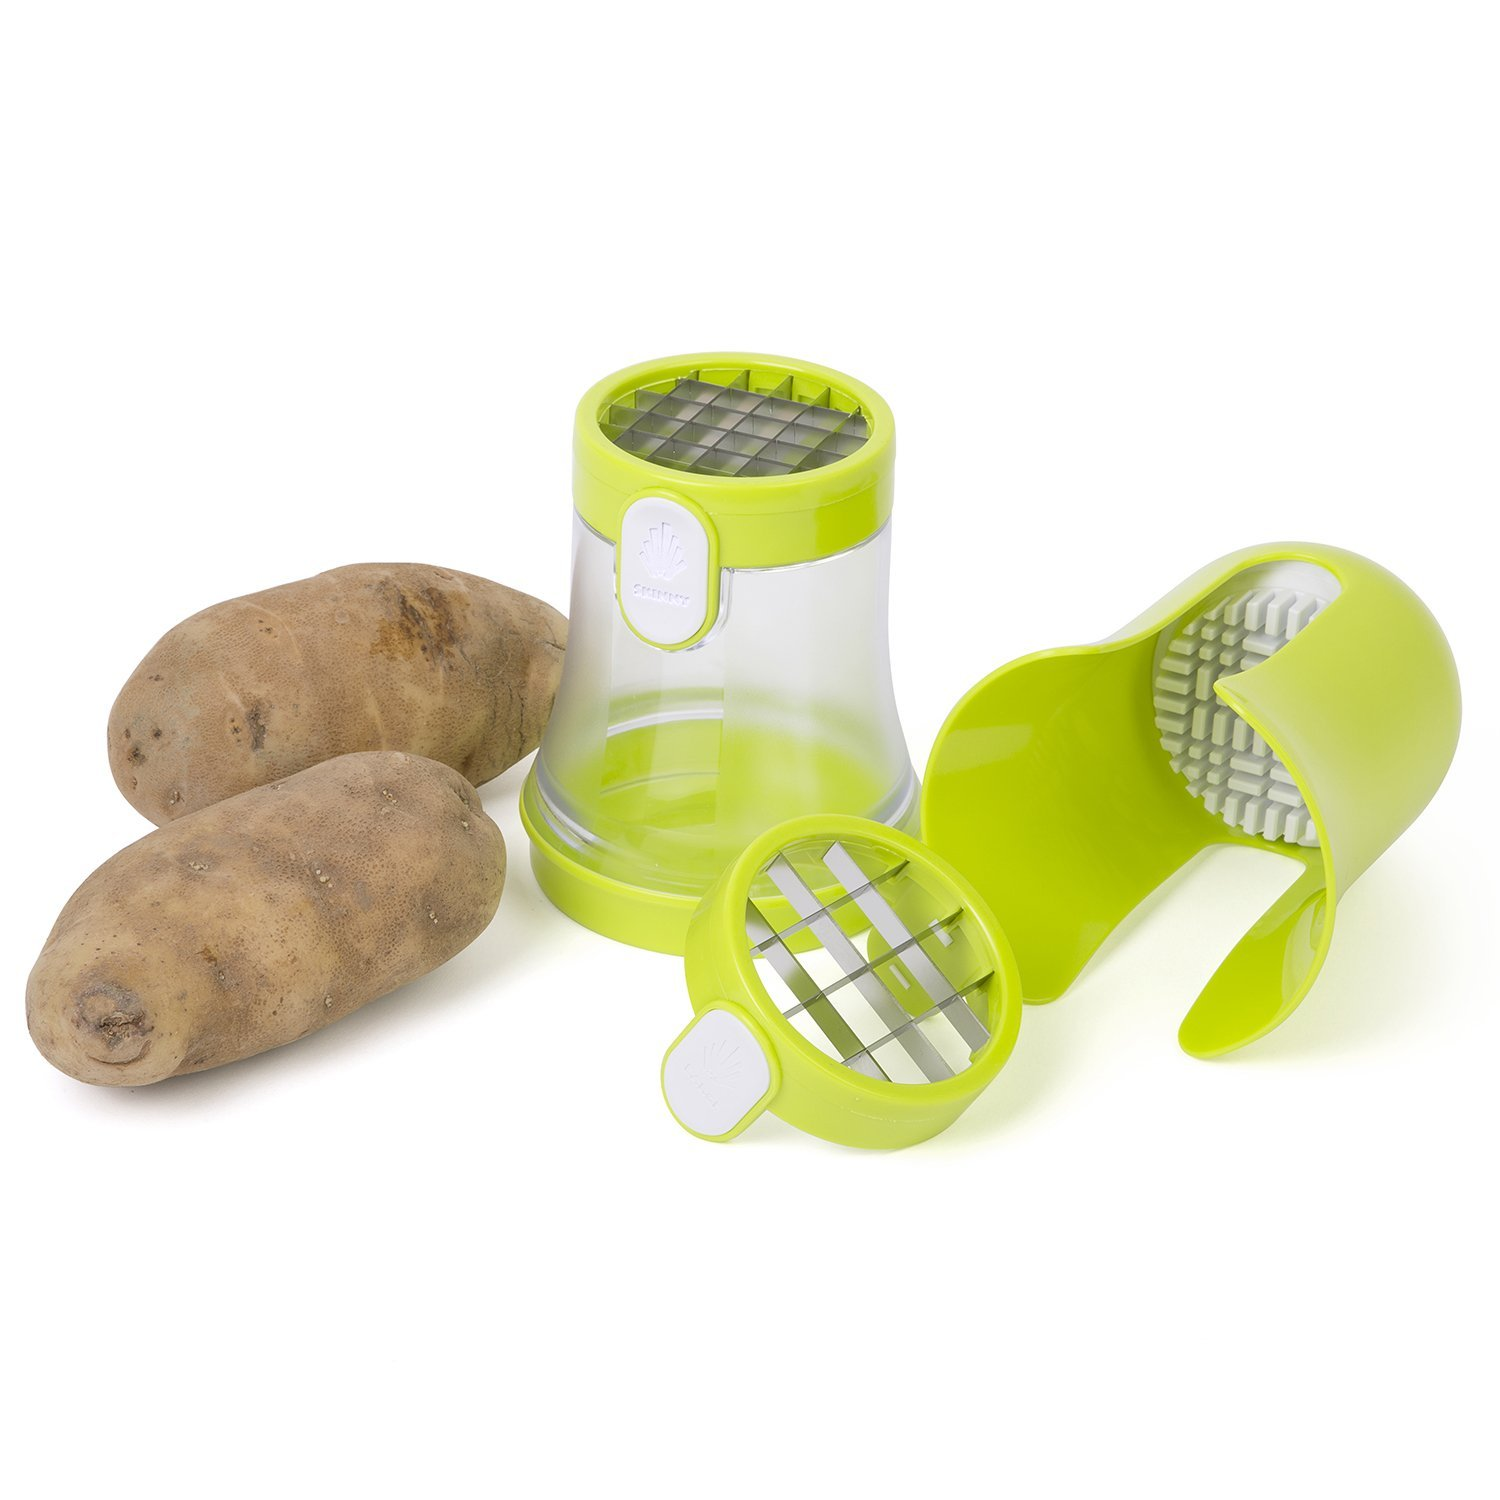 Jumbl Potato Dicer & French Fry Cutter with Dual Fry Size Blades Produces Skinny or Large... by Jumbl